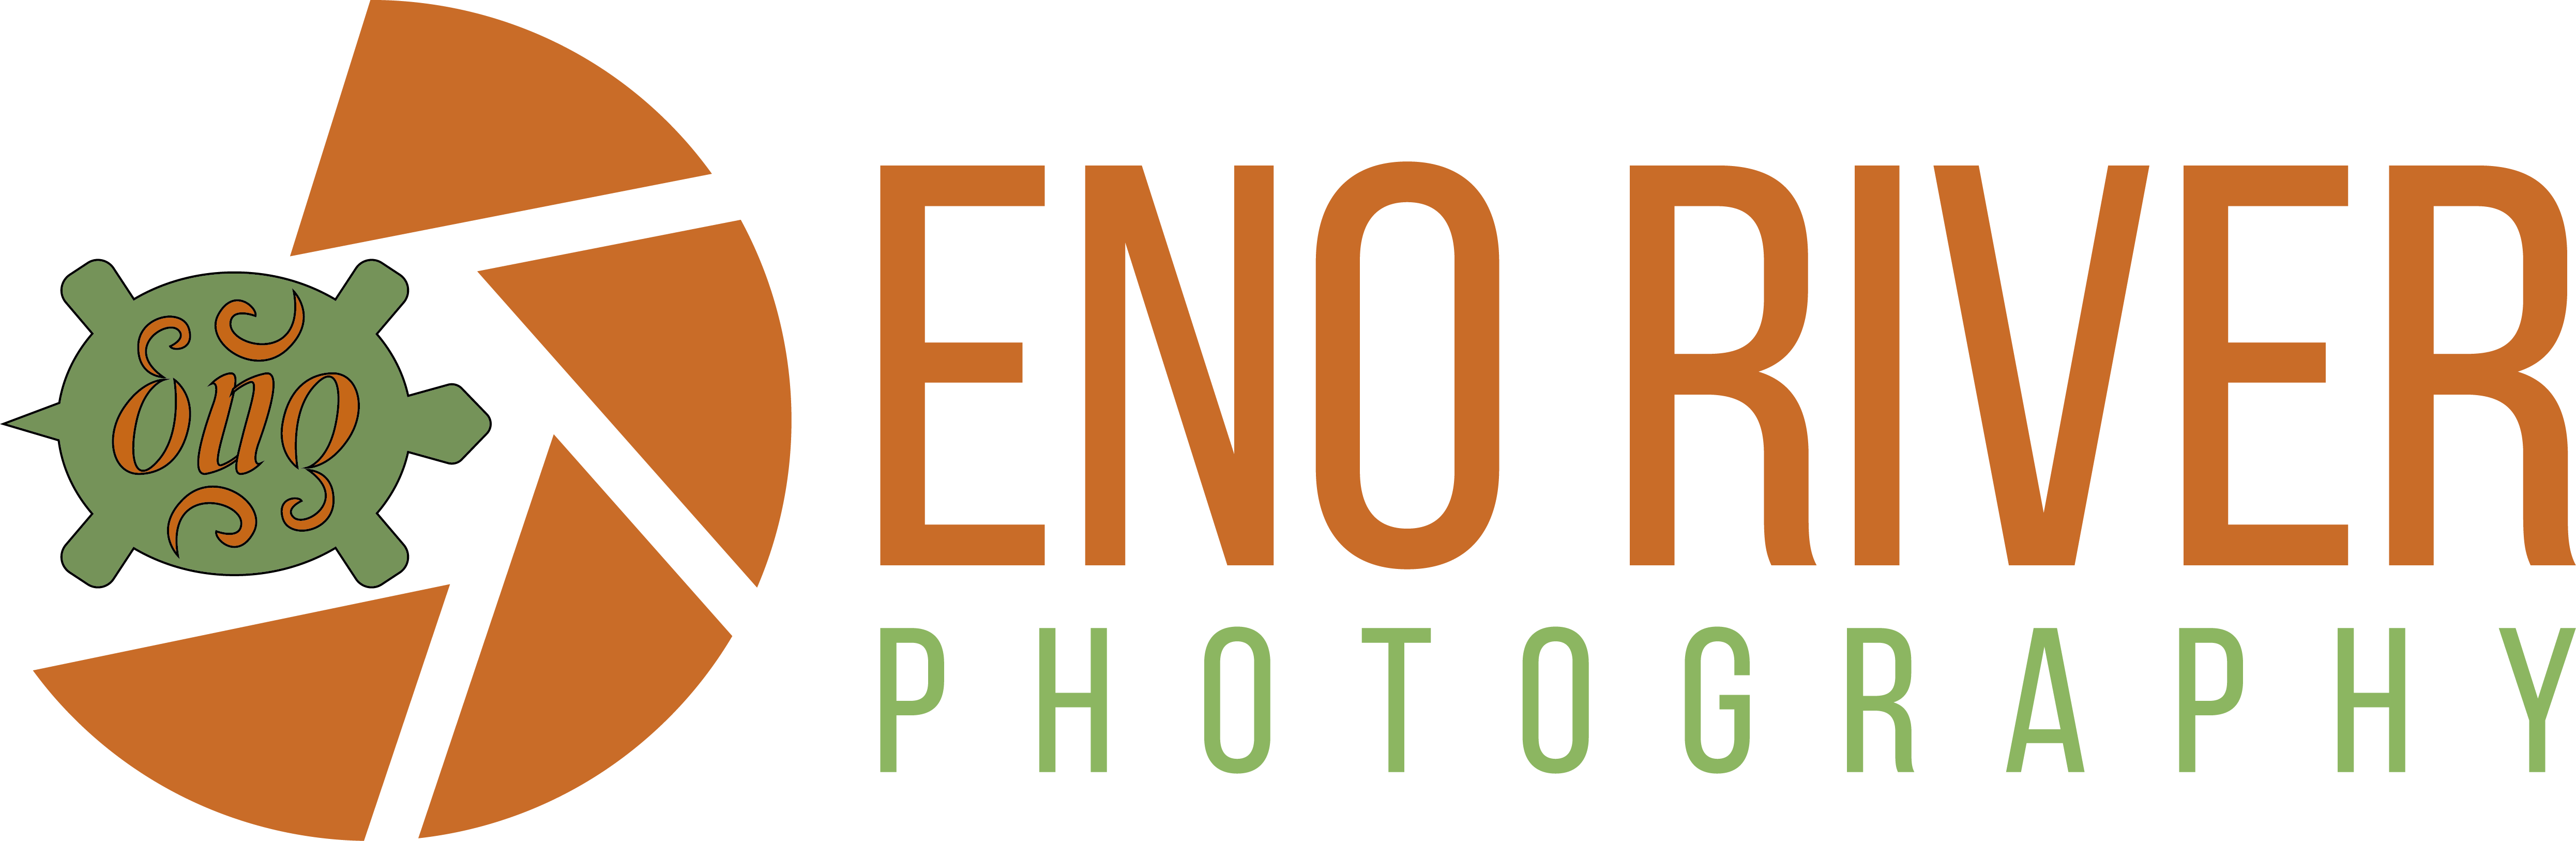 Eno River Photography